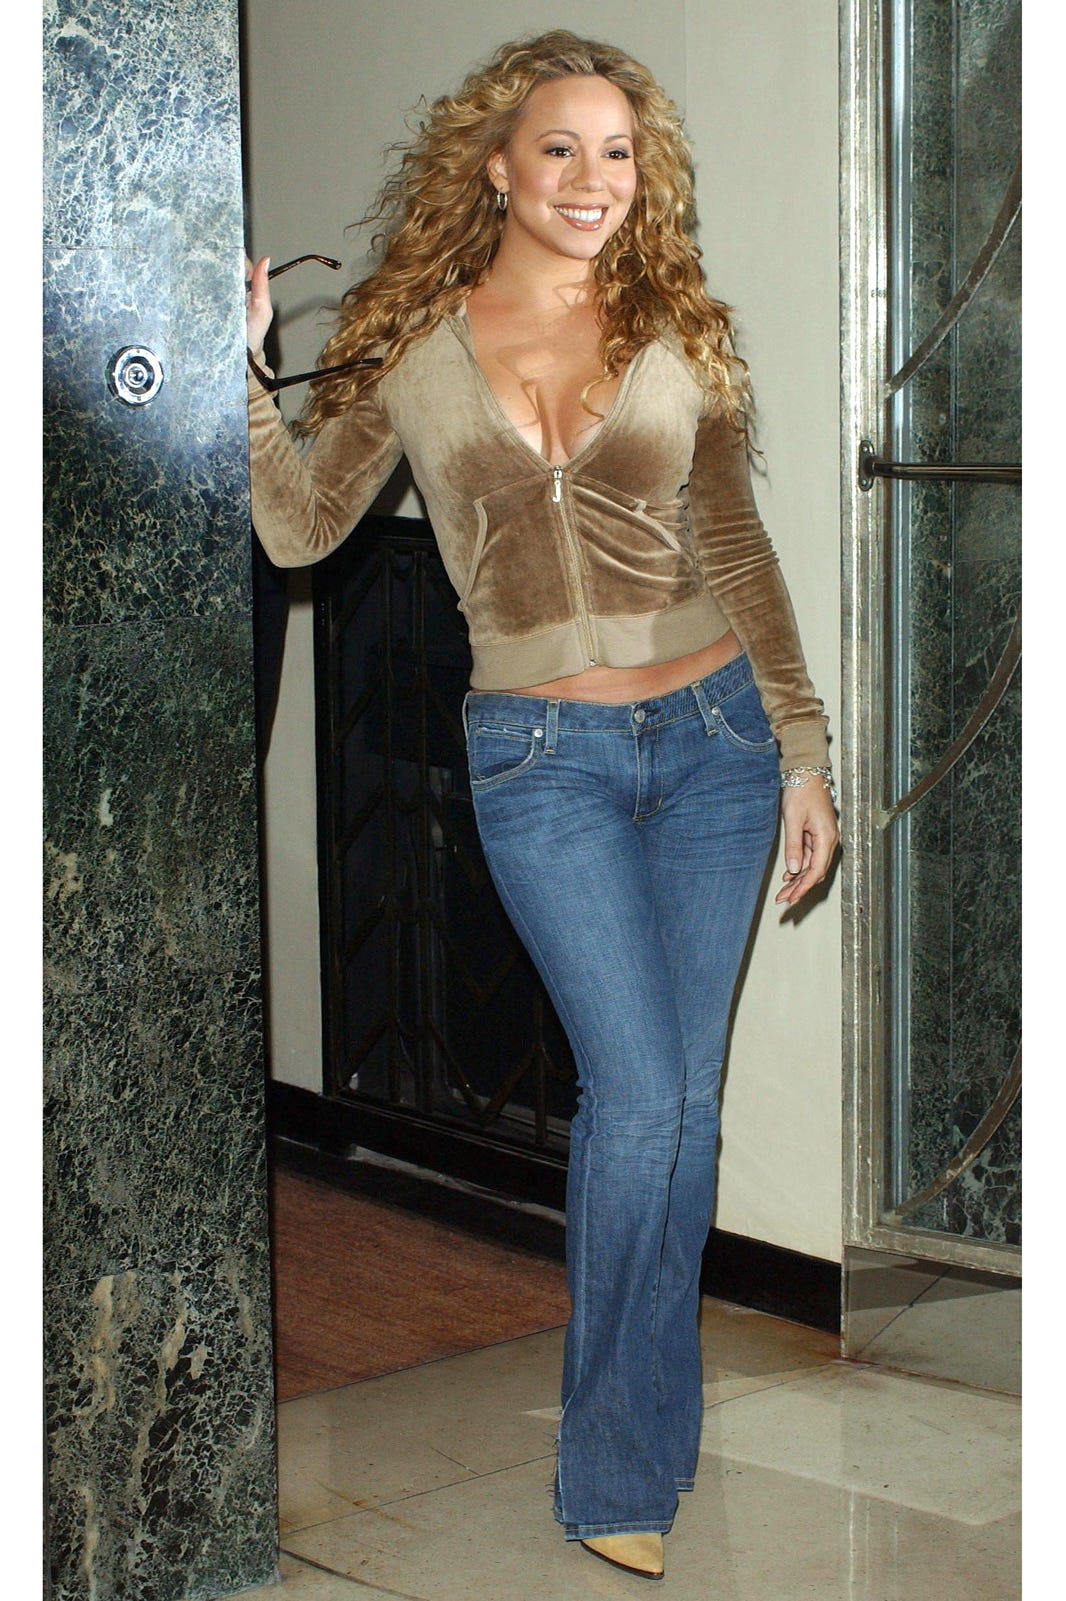 49f95996cf05 Juicy Couture Closing - 2000s Celeb Fashion Trends